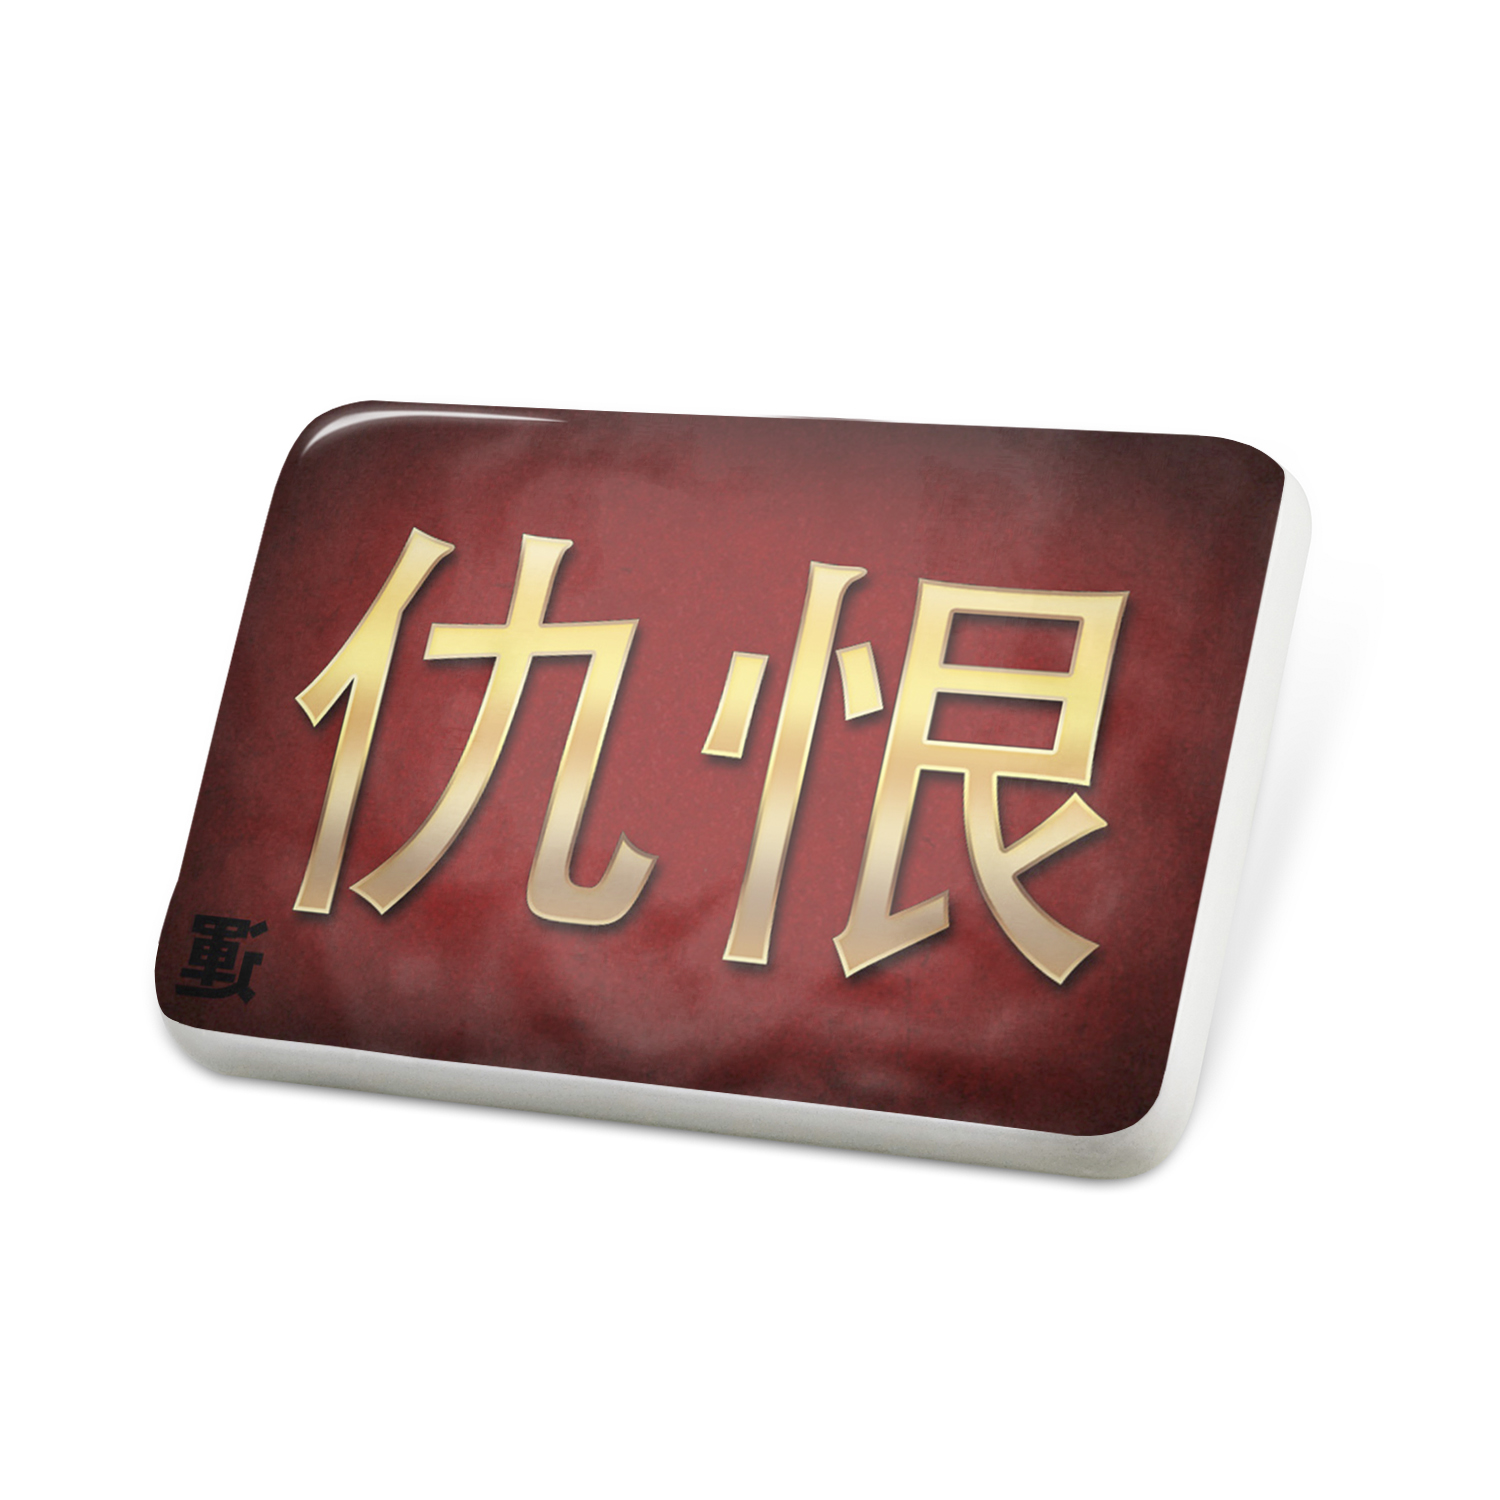 Porcelein Pin Hate Chinese characters, letter red   yellow Lapel Badge � NEONBLOND by NEONBLOND